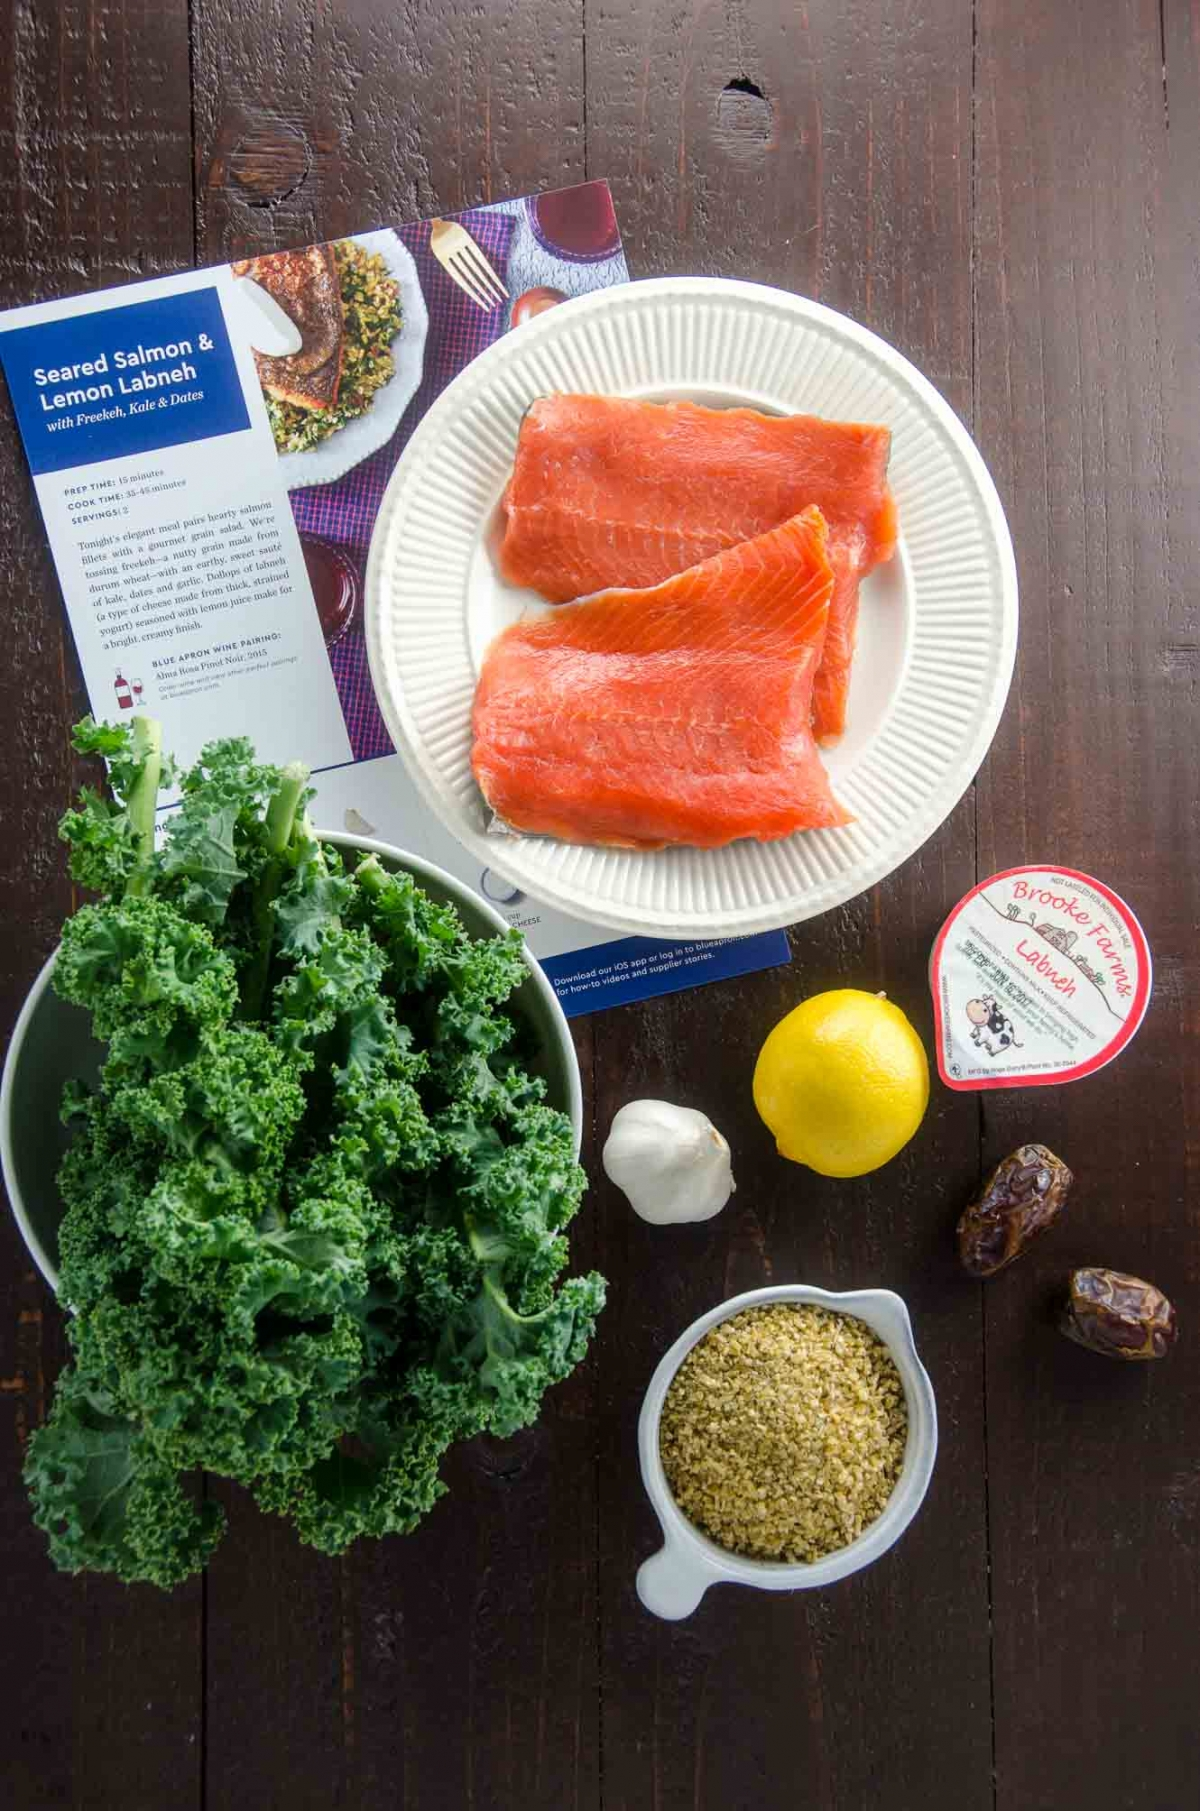 Blue apron vegetarian - We Tried Blue Apron Spoiler Alert It S Fabulous Umami Girl A Food Blog With Mostly Healthy Mostly Vegetarian Recipes